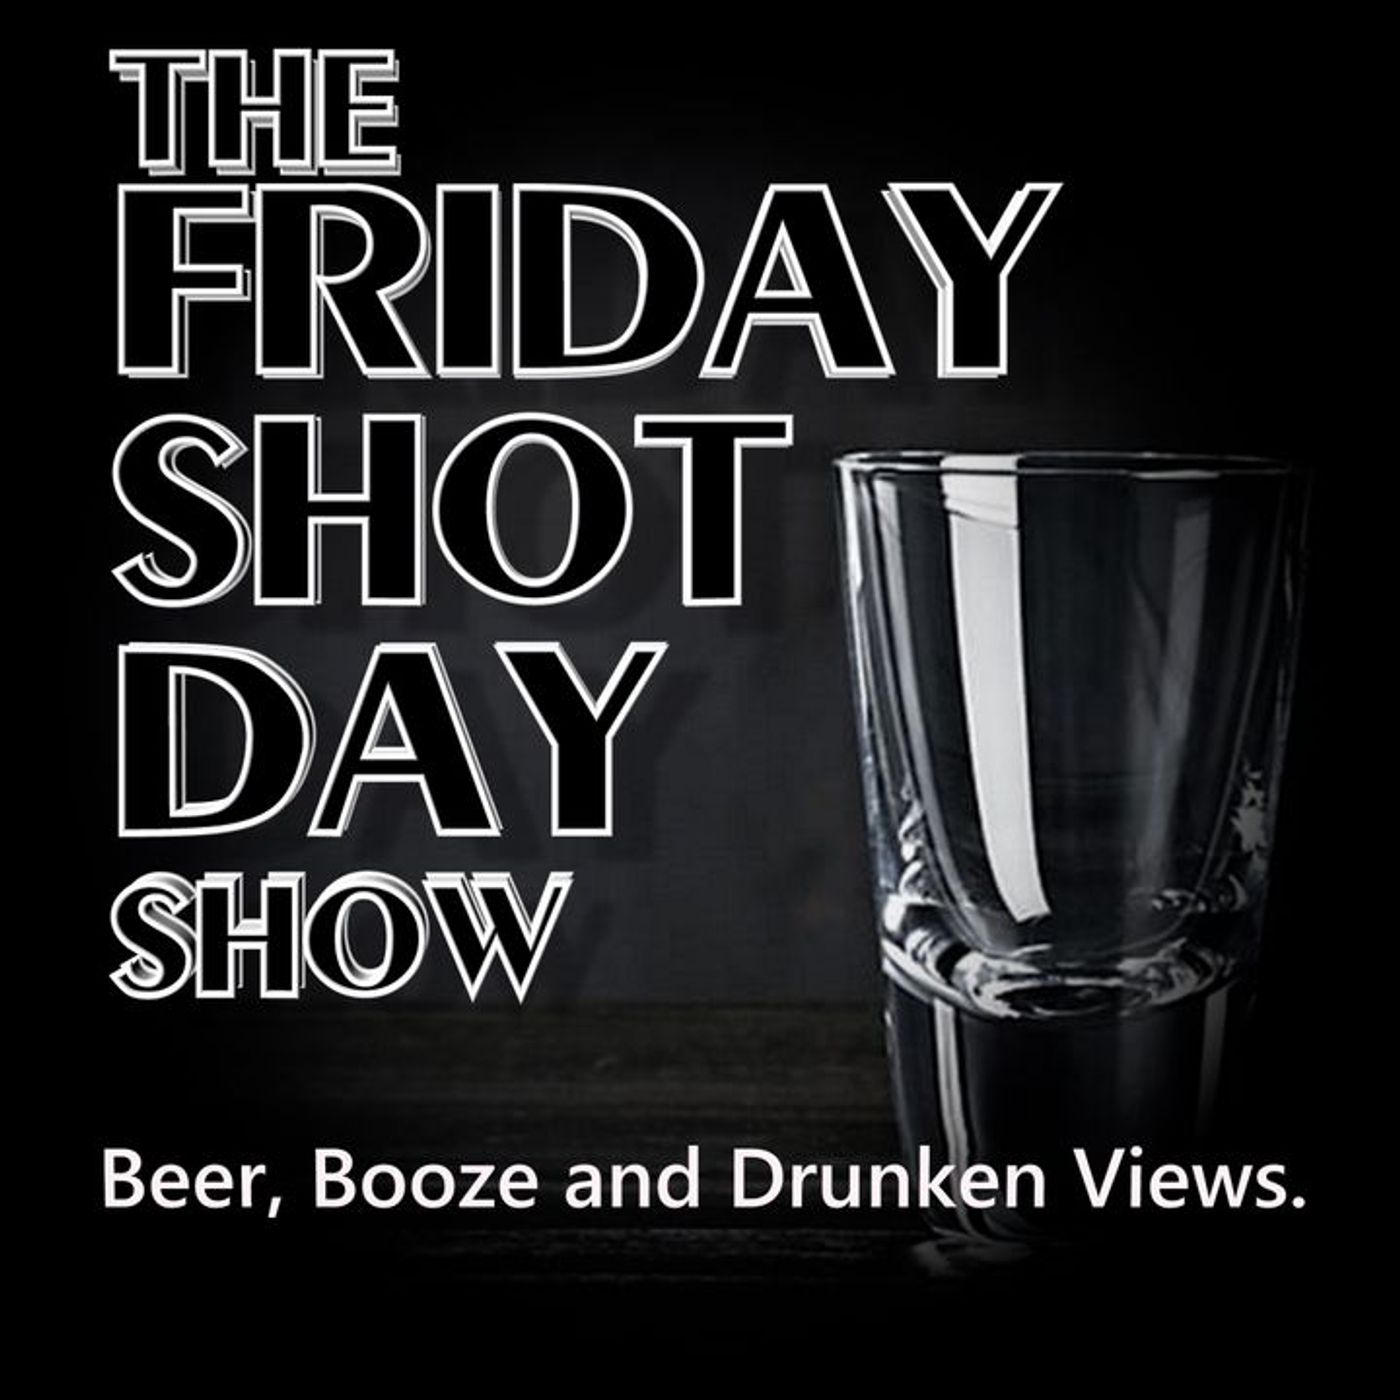 We're Back in the Studio Again | Friday Shot Day Show (06/18/2021)